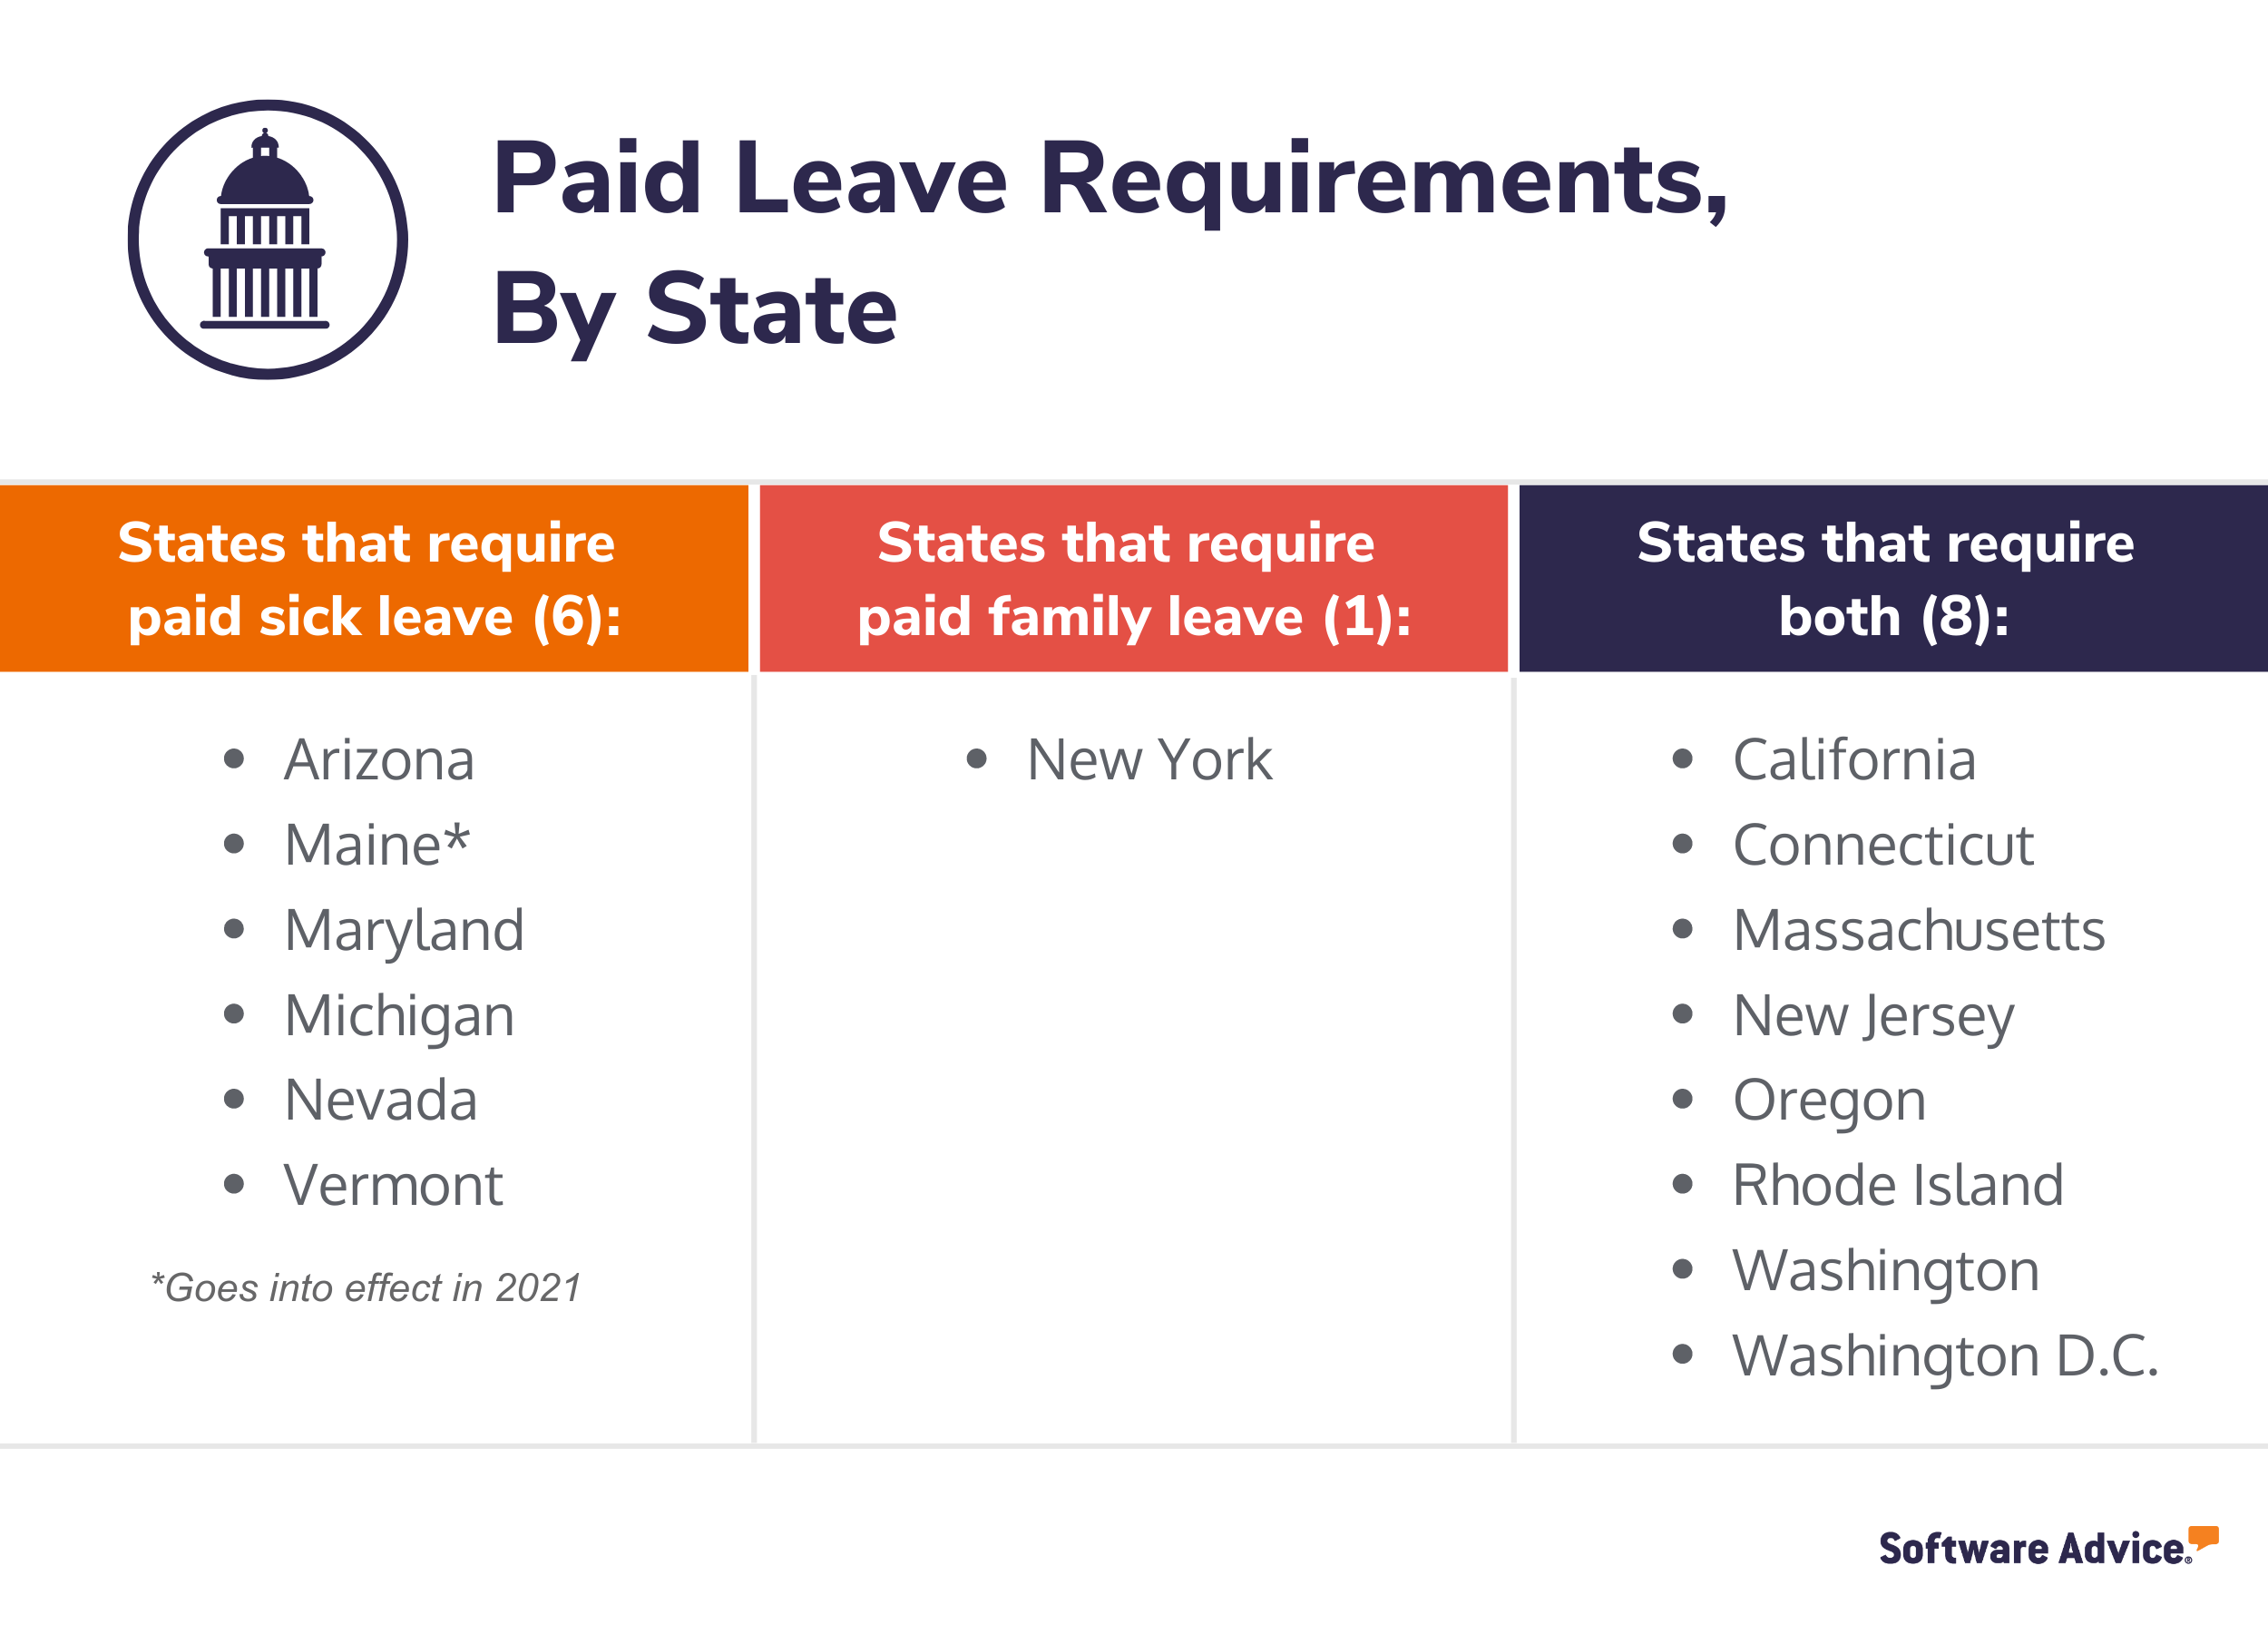 A chart showing the different paid leave requirements for the states in the U.S.